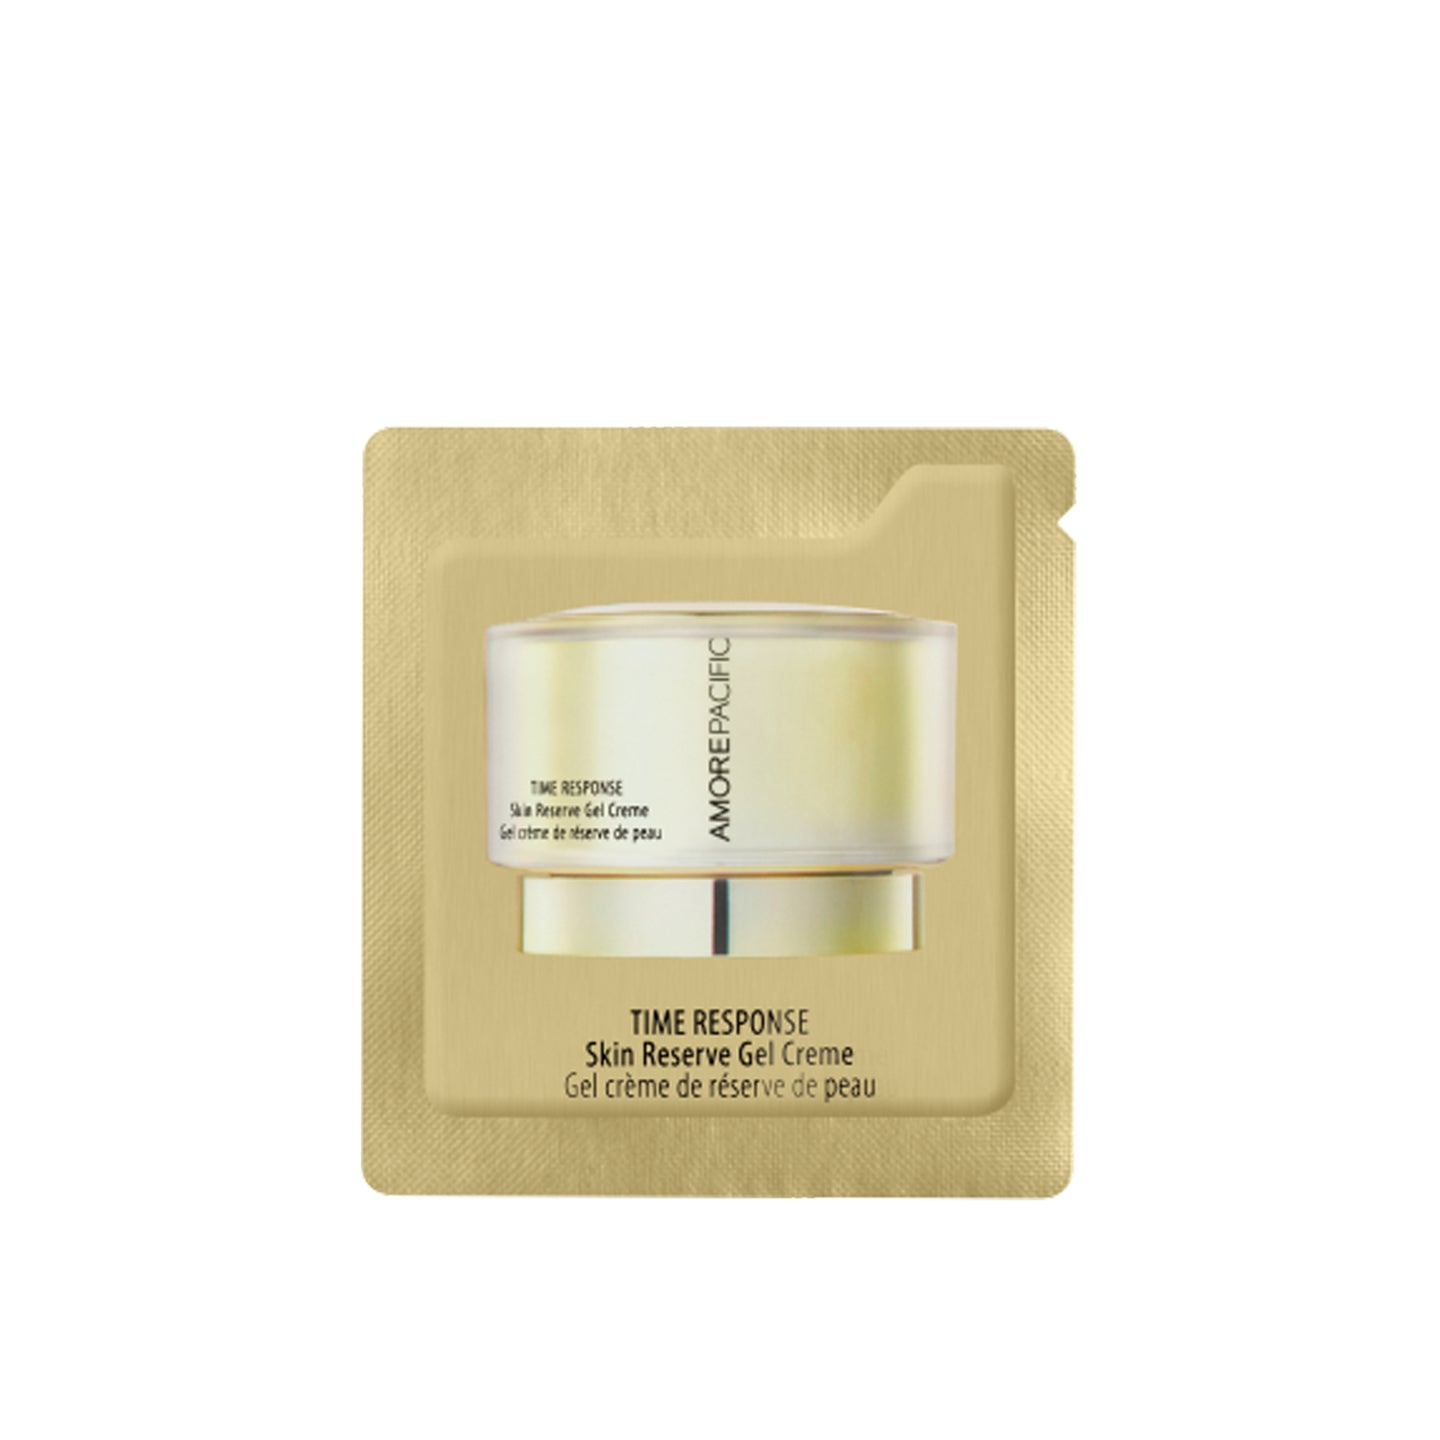 TIME RESPONSE Intensive Gel Creme (1ml)